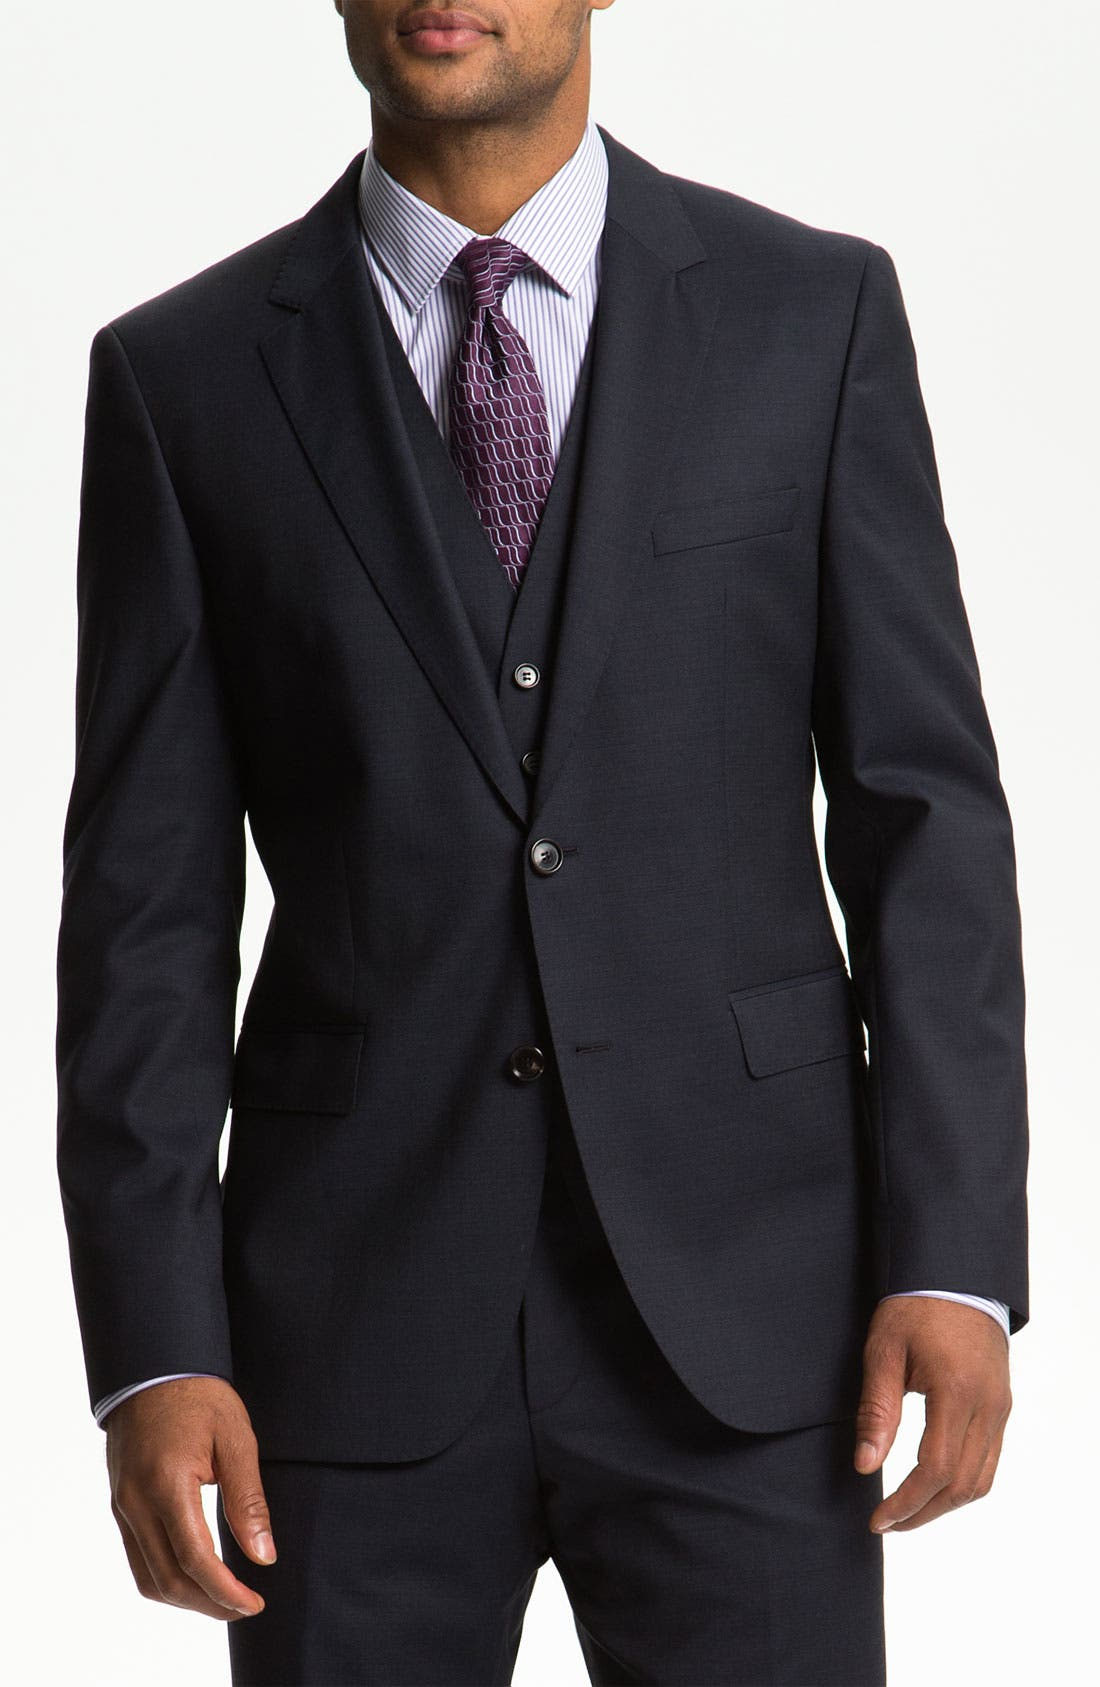 Main Image - BOSS Black 'James/Sharp' Trim Fit Three Piece Suit